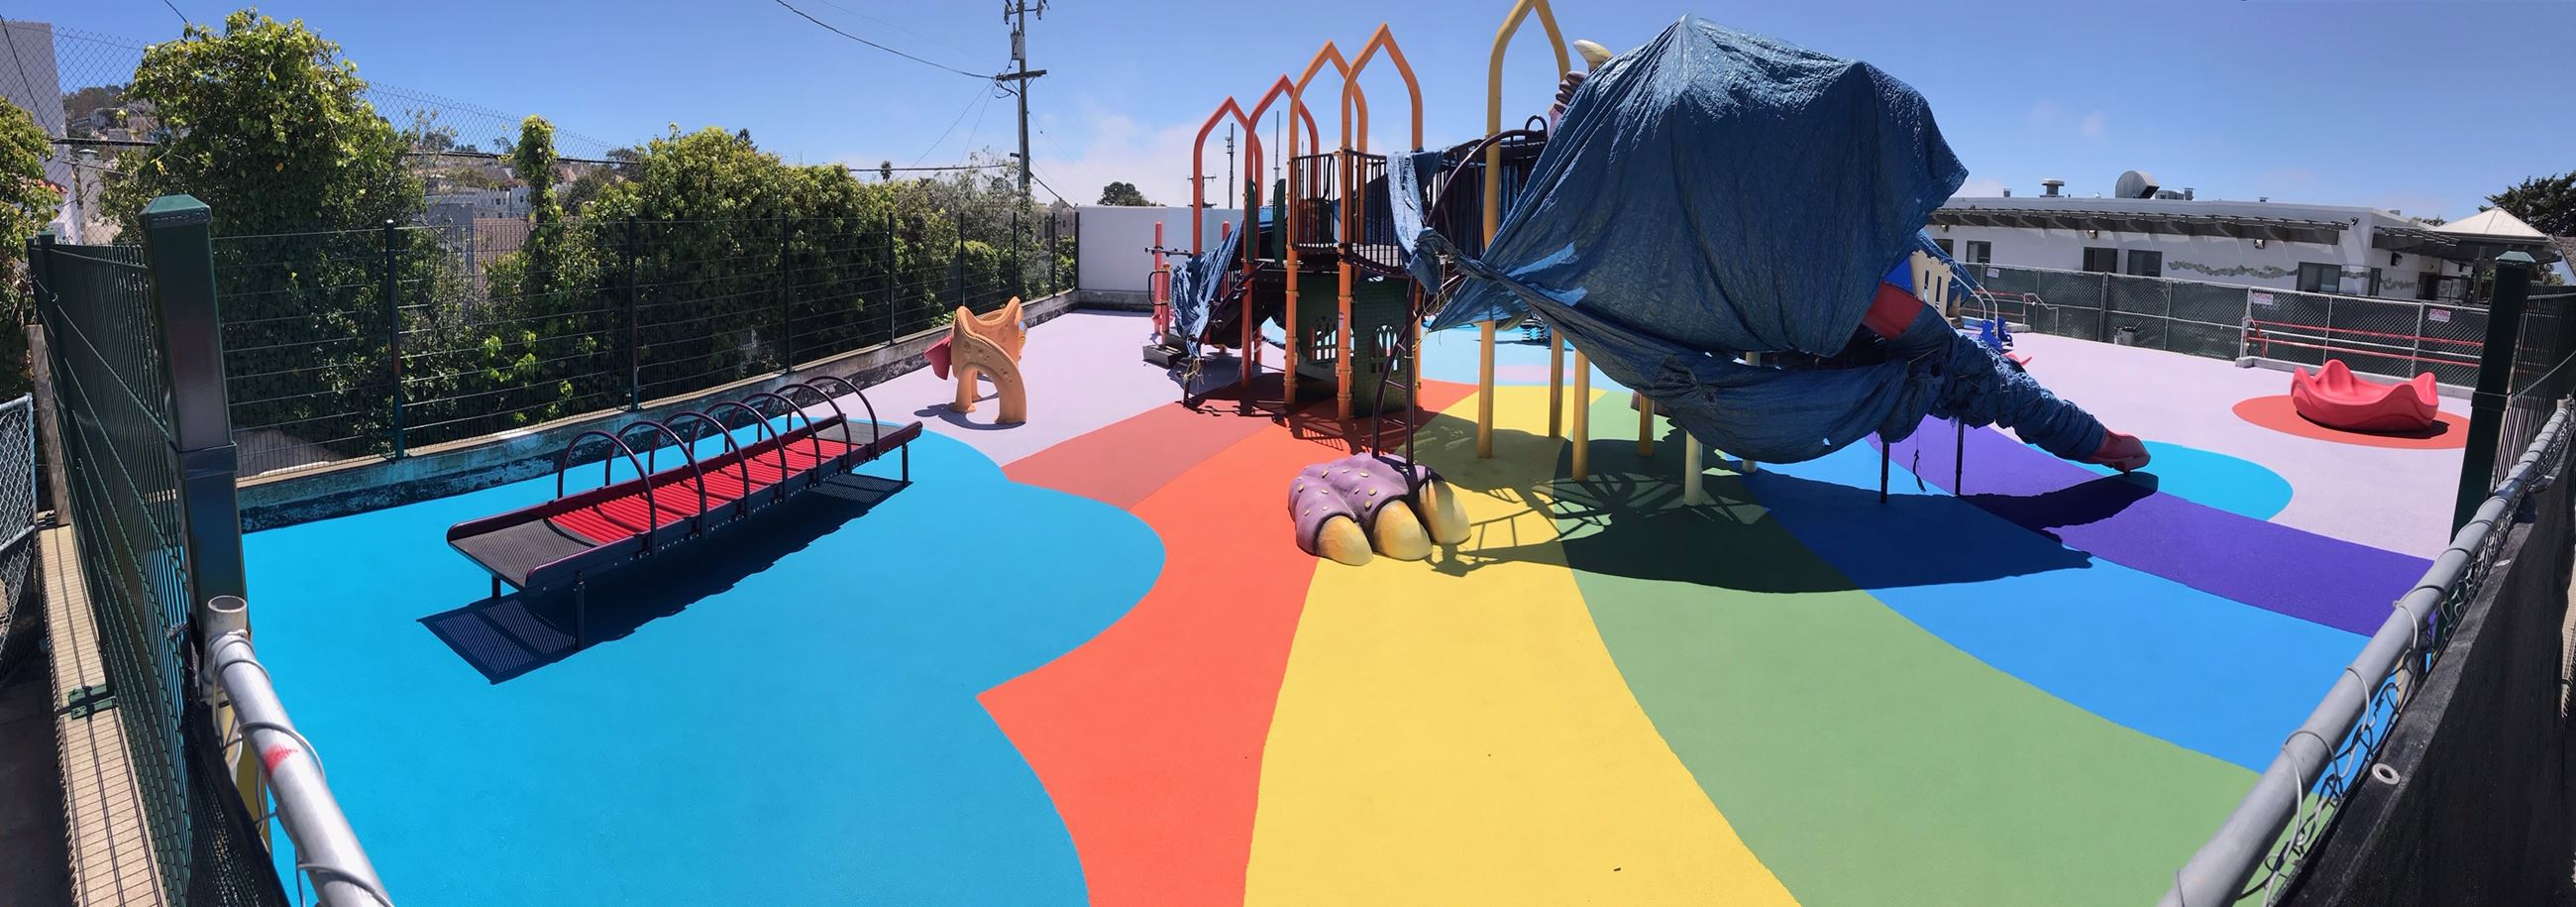 Image is of the West Portal Playground. The ground is covered in a poured in place rubber surfacing